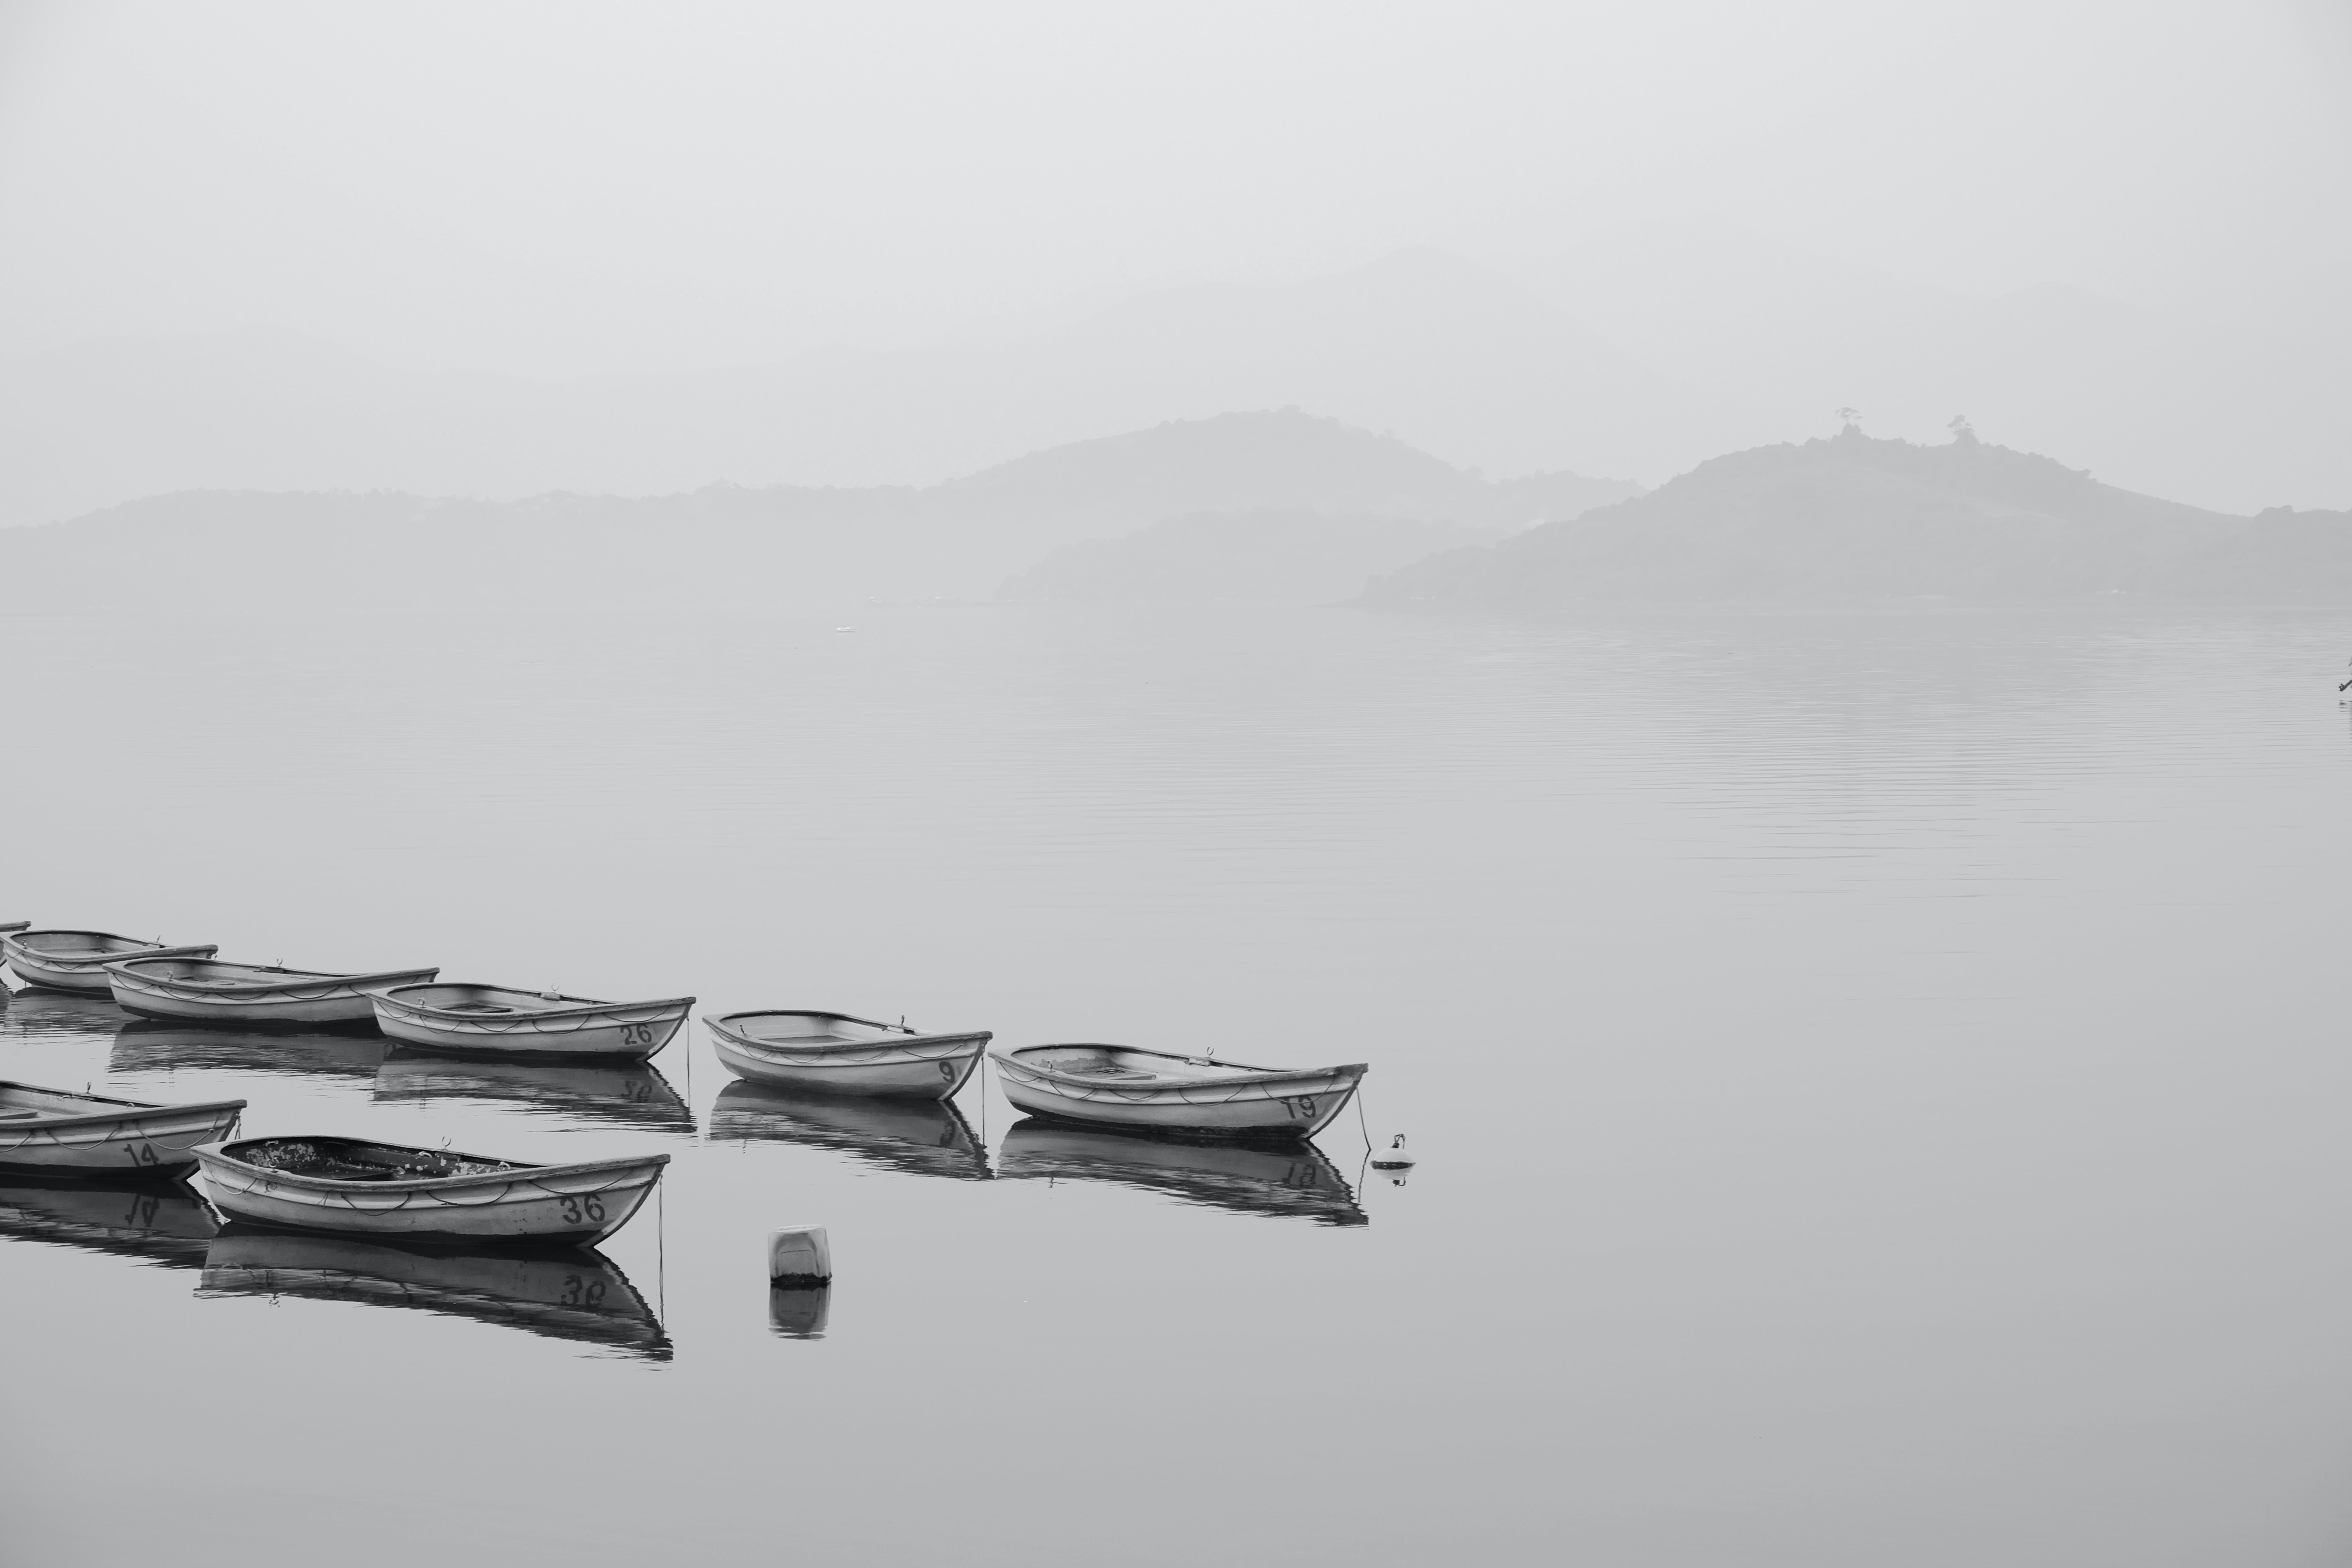 Dreamy monochrome shot of boats in a placid latke.